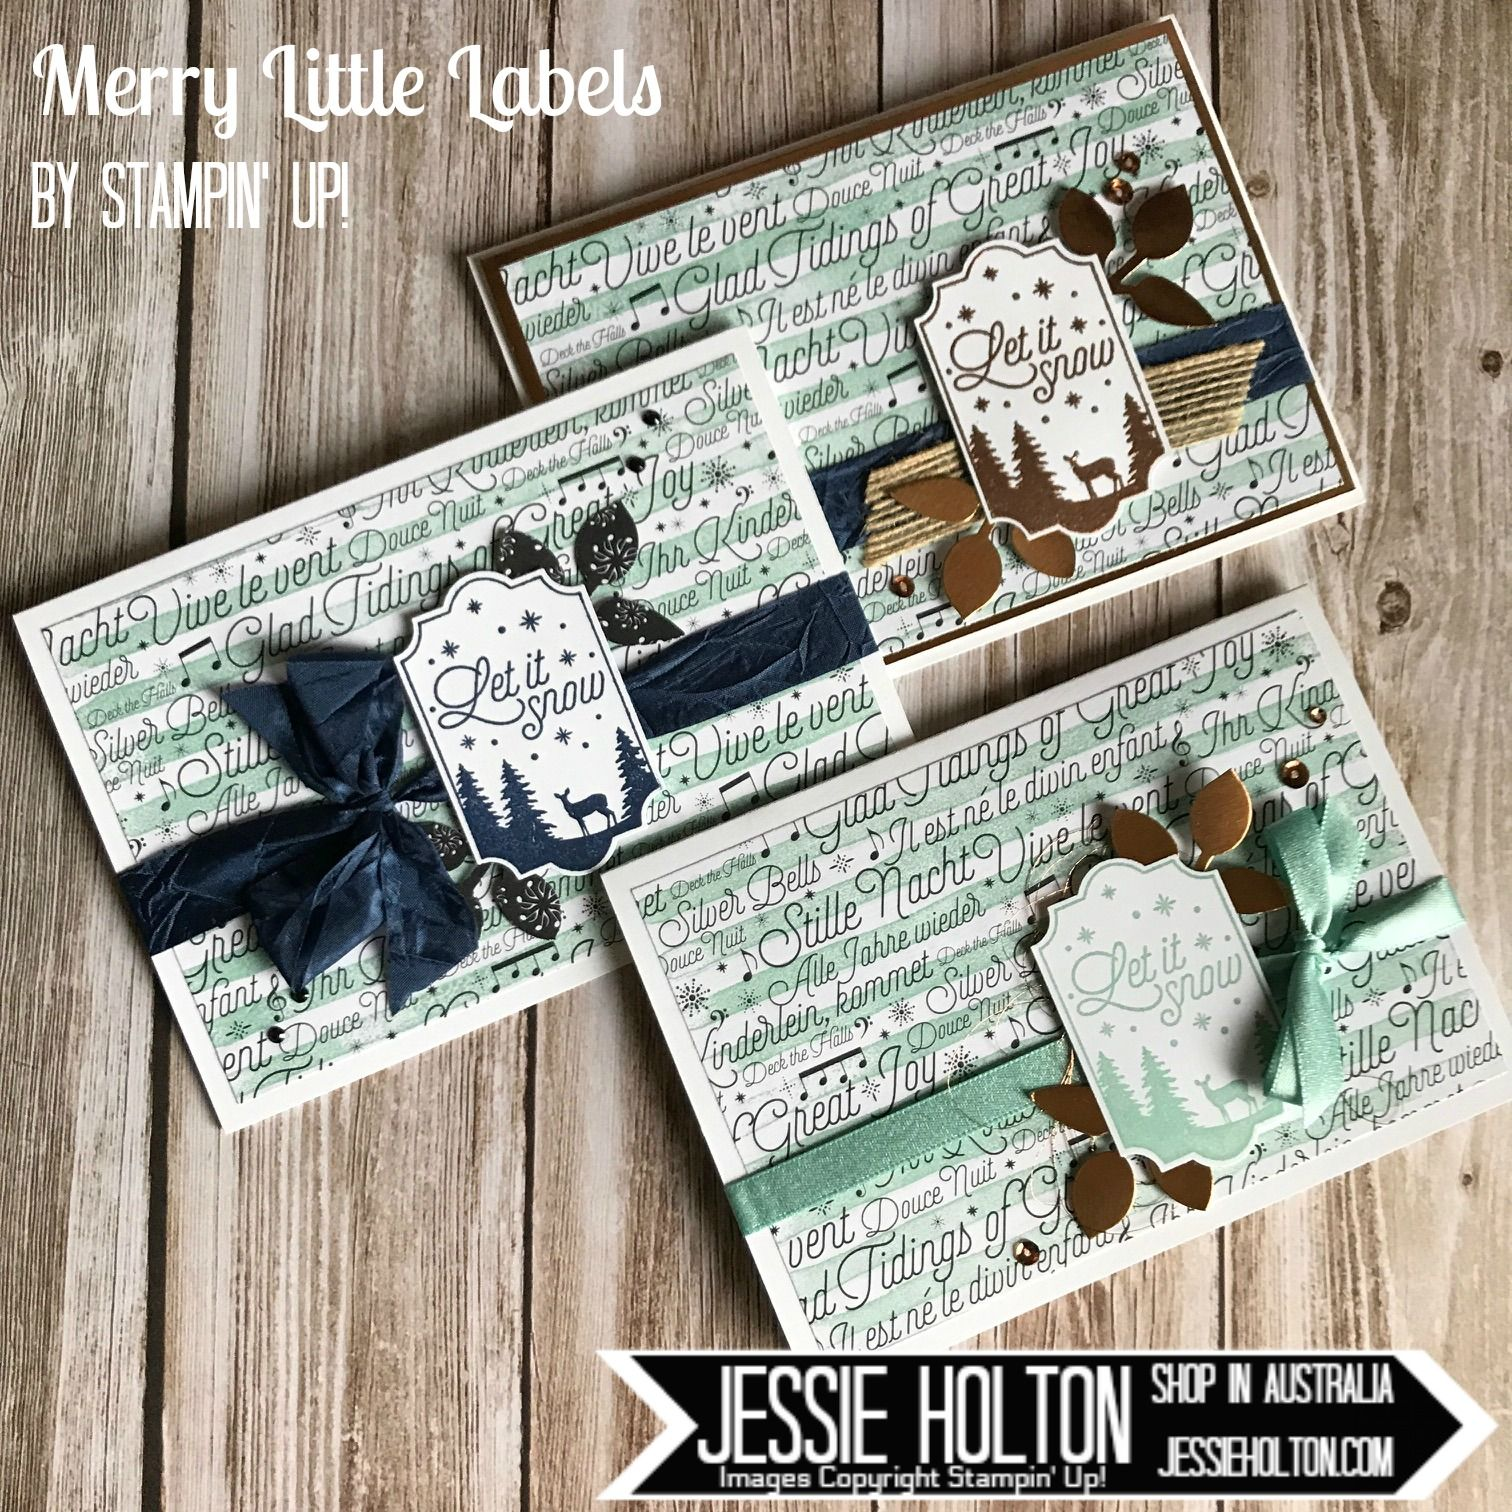 Jessie Holton Australia - Shop with me 24/7! How gorgeous is this new Merry Little Labels Stamp Set with coordinating Everyday Labels Punch? Great for tags & cards, too! Buy the bundle & save 10%. Check out the rest of the projects on this Stampin' Up Only Blog Hop. #JessieHolton #StampinUp #SUO